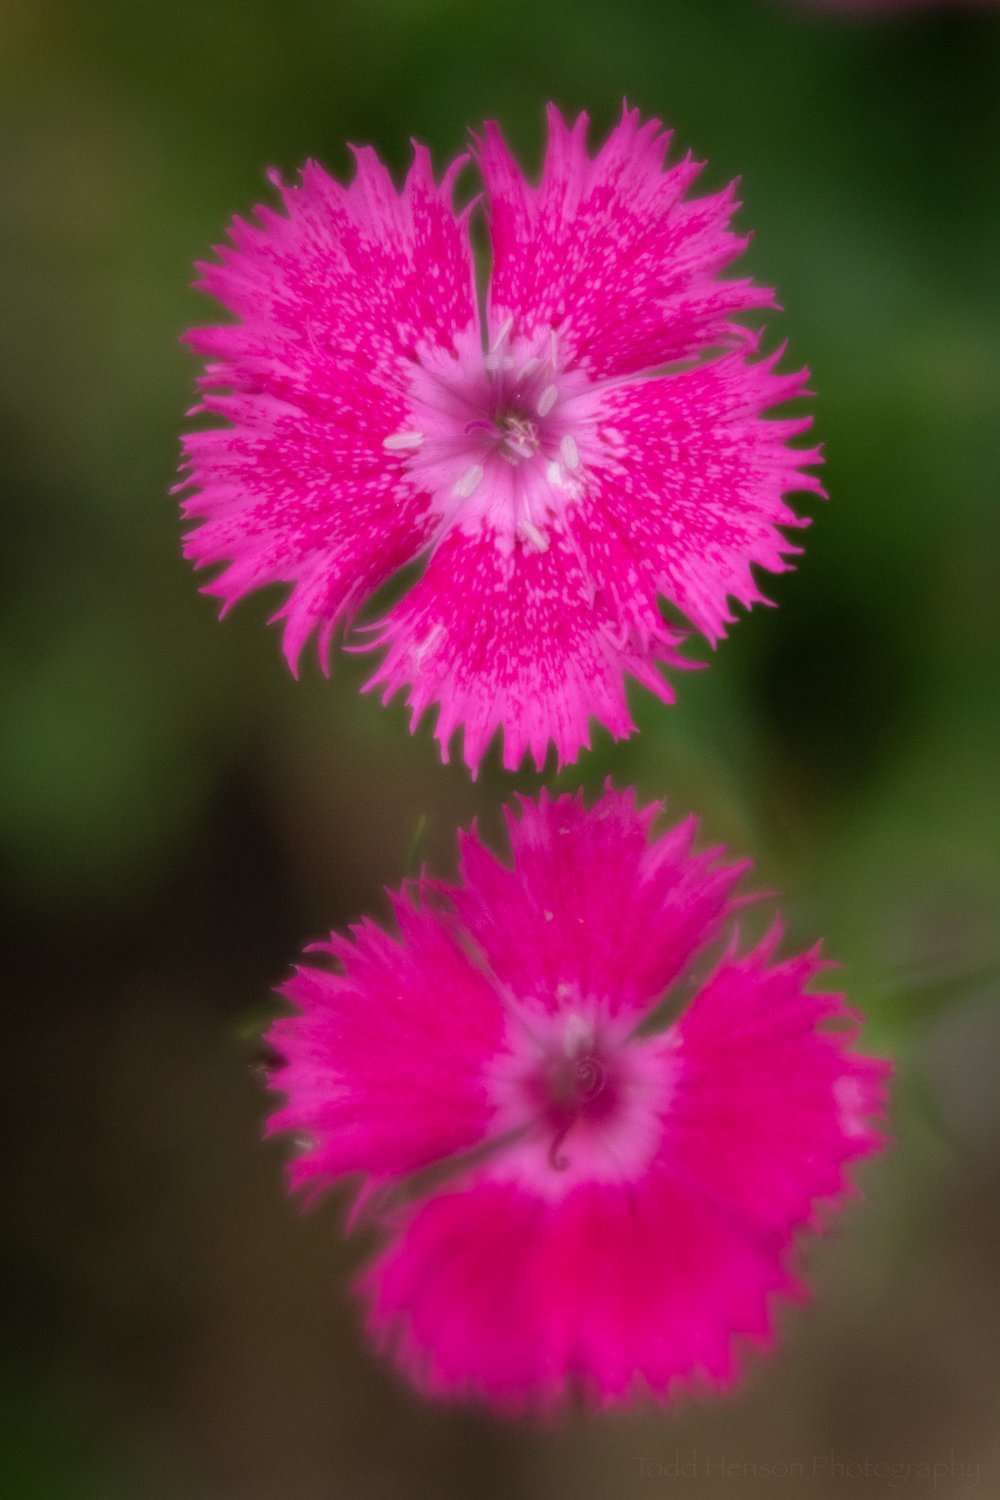 A pair of pink dianthus photographed with the Lensbaby Velvet 56 using a smaller aperture.